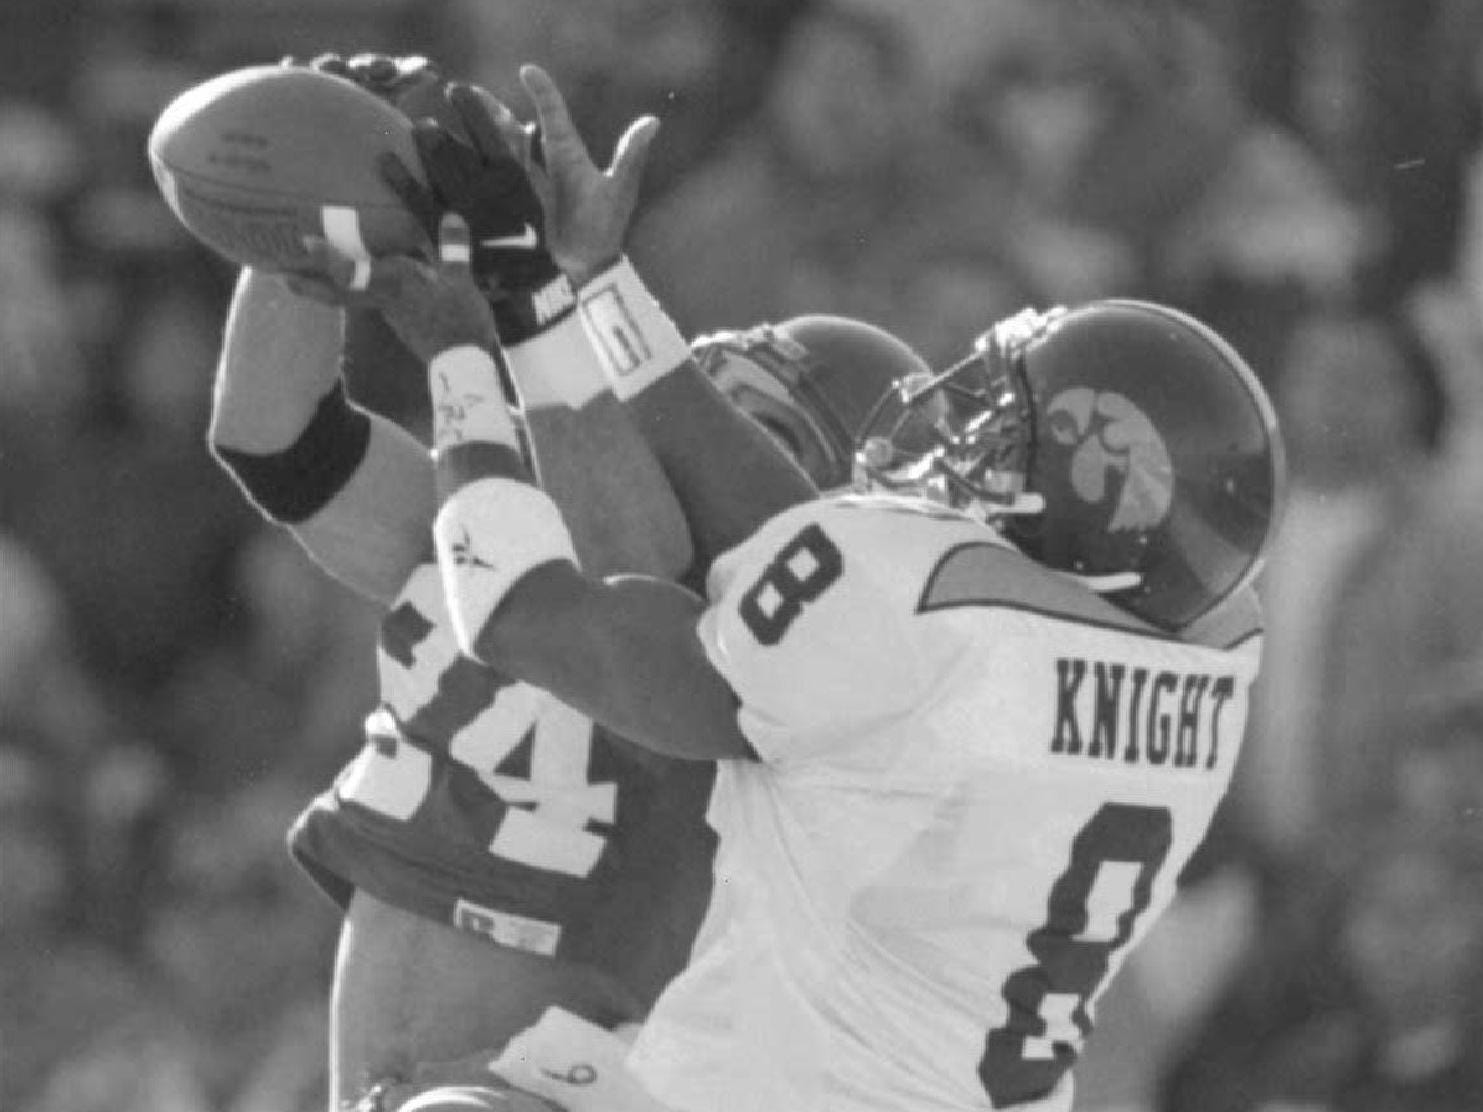 Iowa defensive back Tom Knight defends a pass to  Washinton's Jerome Pathon in the 1995 Sun Bowl. Knight was the ninth overall pick by the Arizona Cardinals in the 1997 NFL Draft.